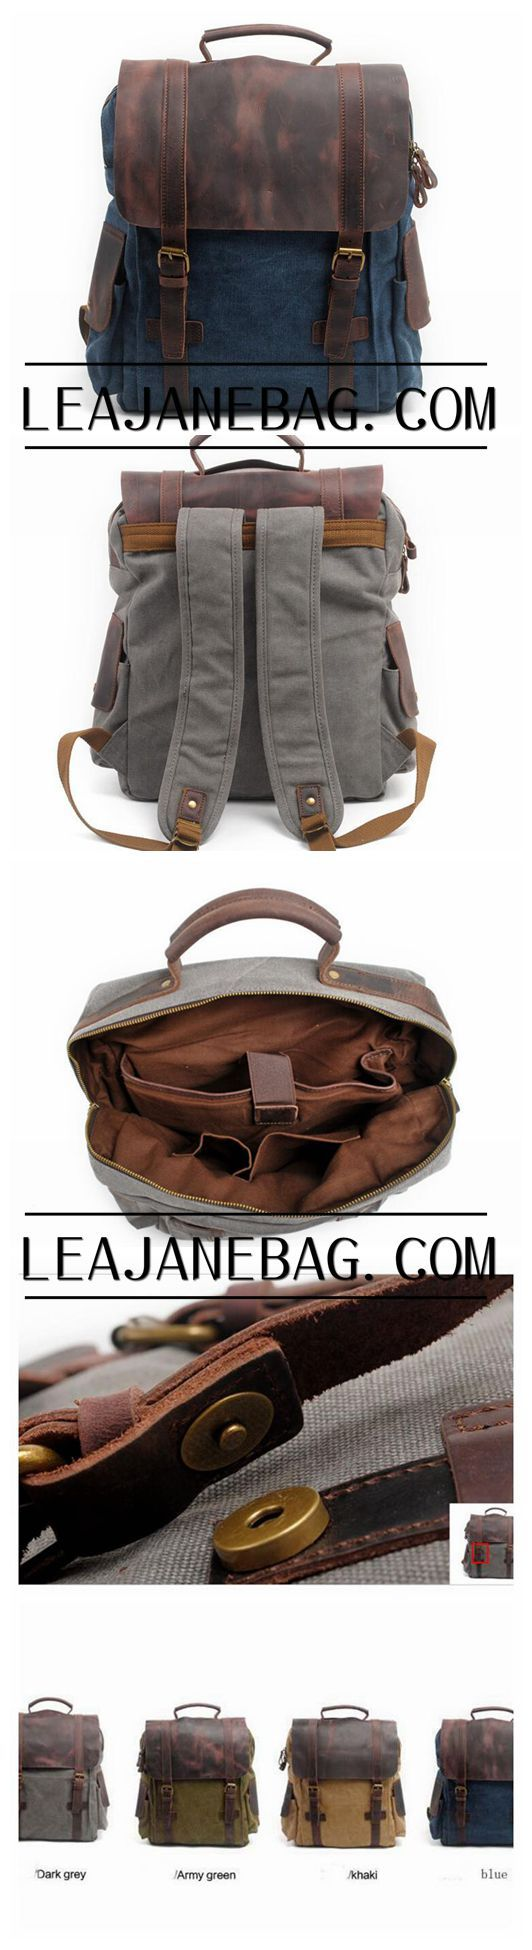 High School Canvas Backpack, Leather Canvas Backpack,Travel Backpack GN017